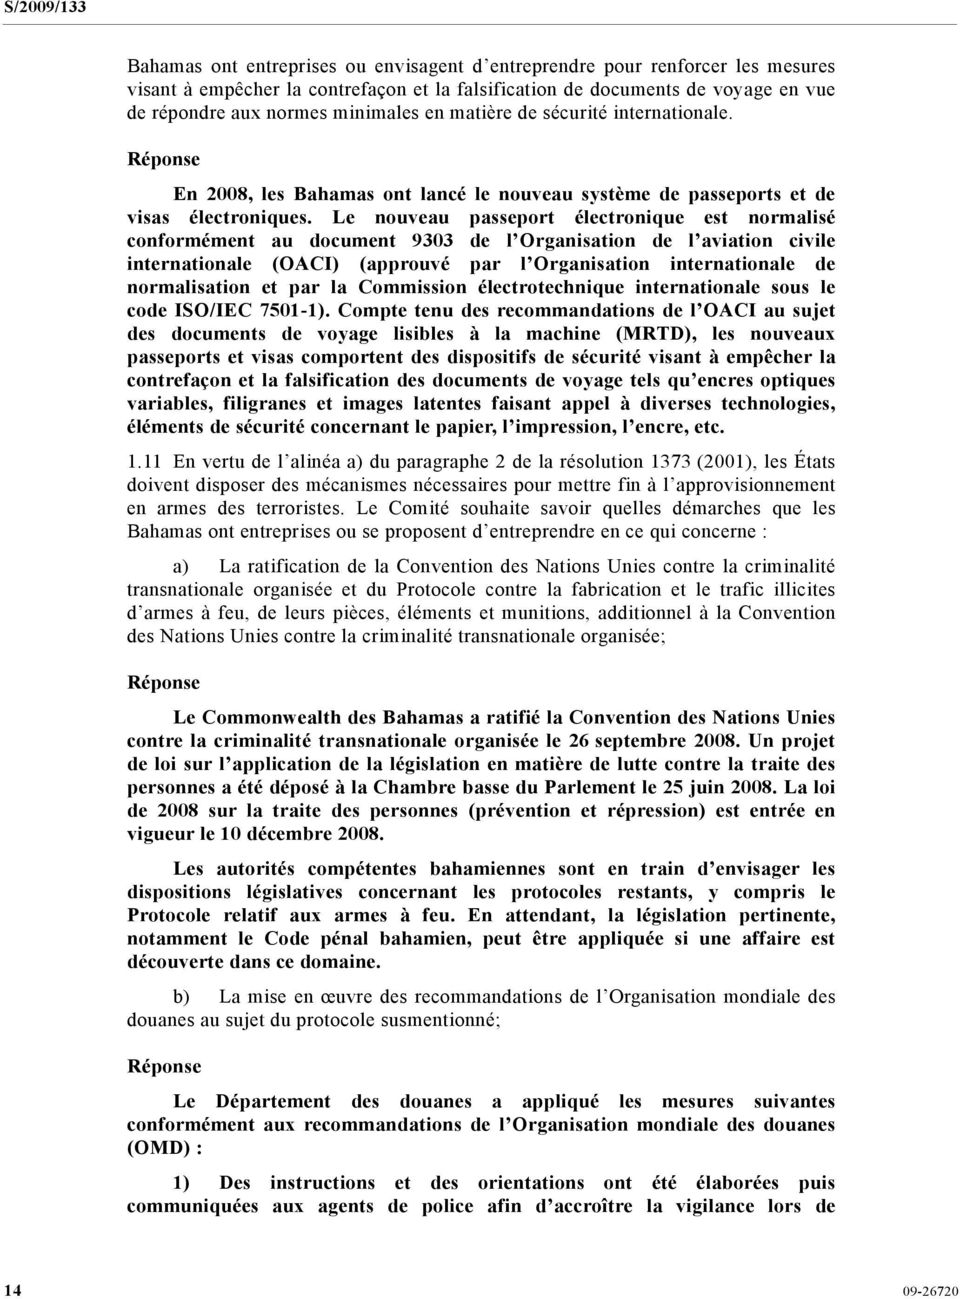 Le nouveau passeport électronique est normalisé conformément au document 9303 de l Organisation de l aviation civile internationale (OACI) (approuvé par l Organisation internationale de normalisation